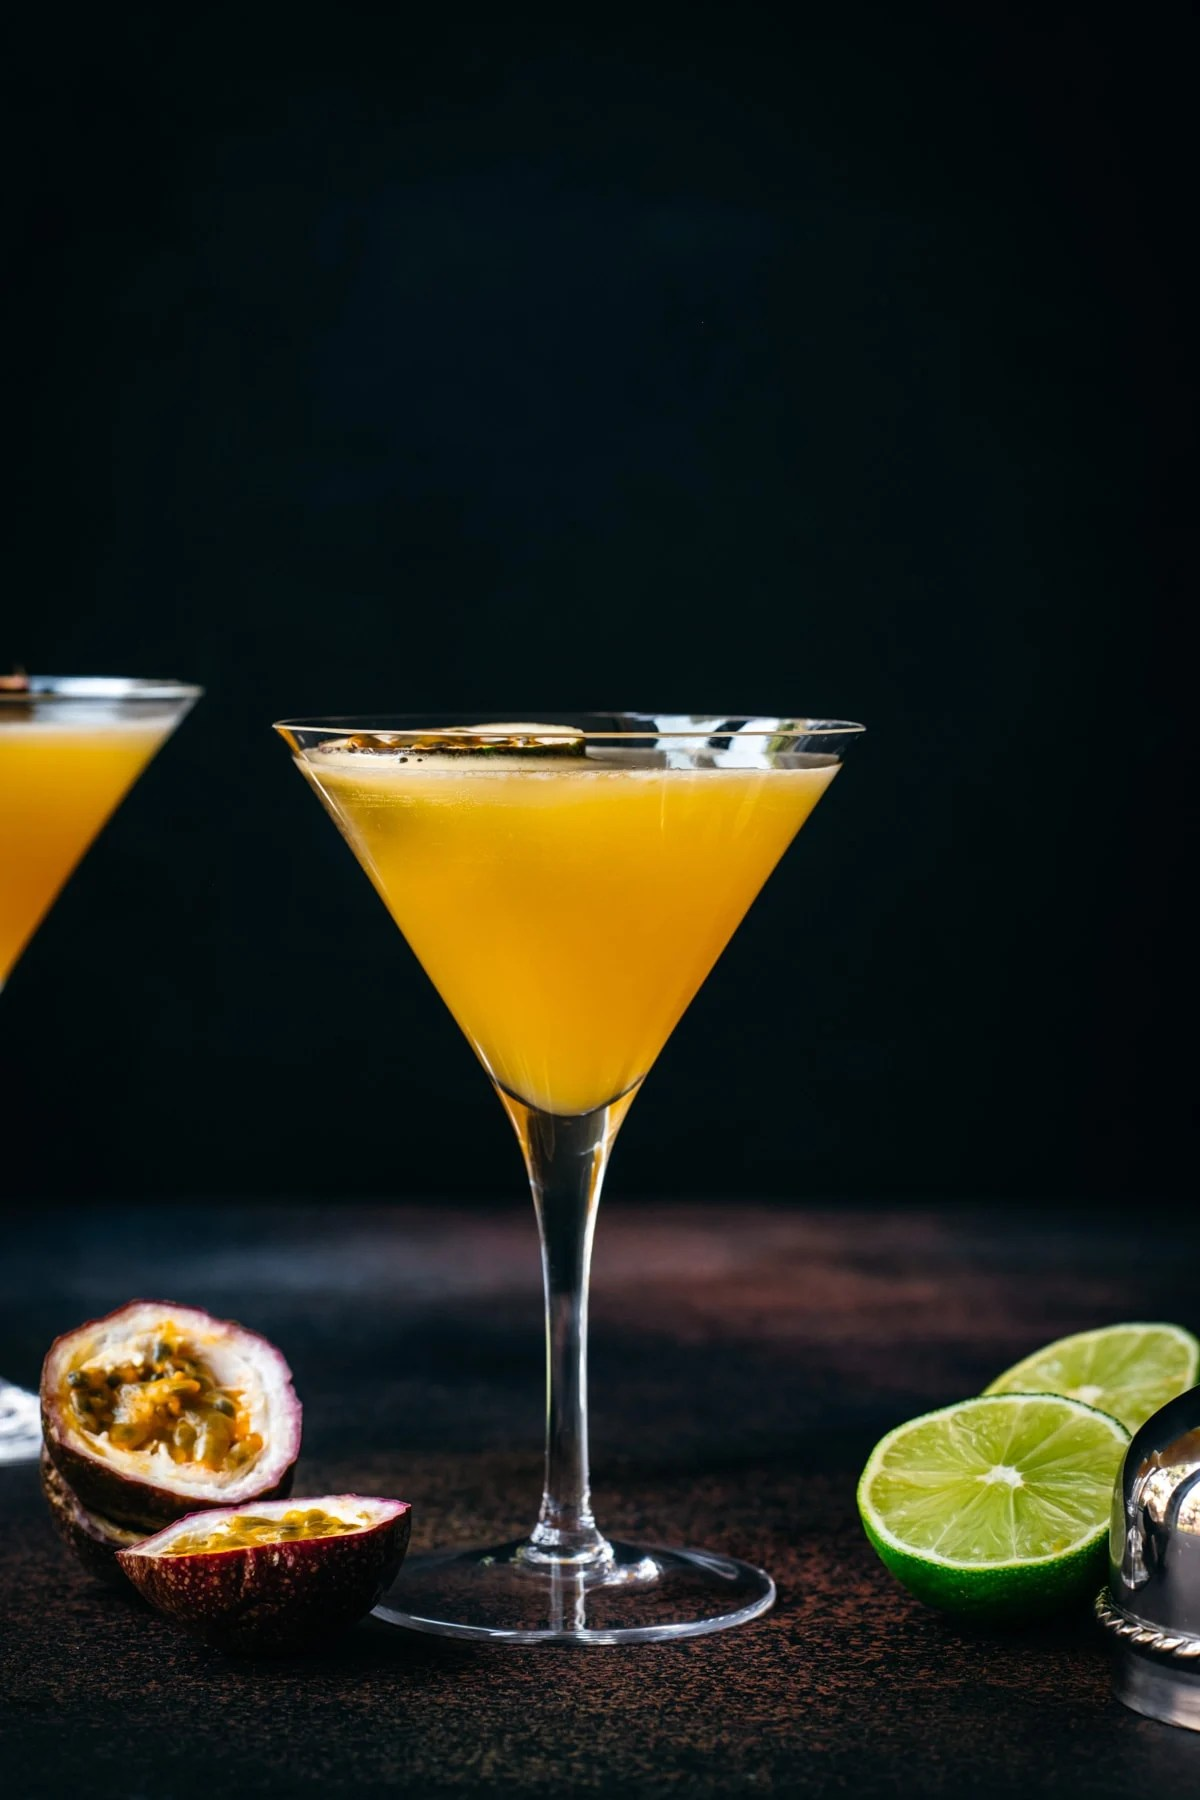 side view of passion fruit martini in a glass.